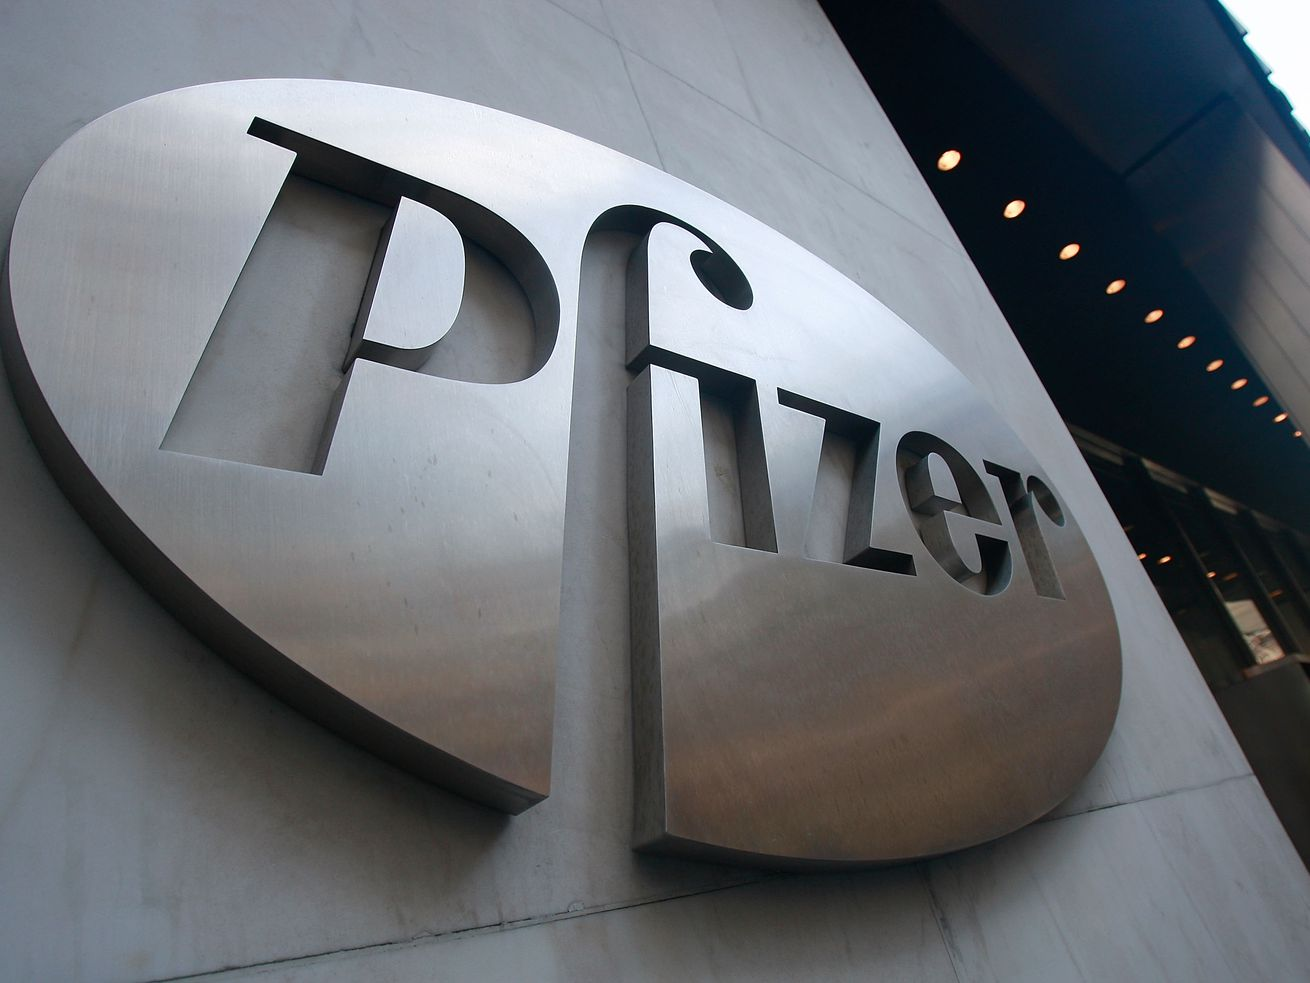 A Pfizer sign hangs outside of the drug company's headquarters in New York City.